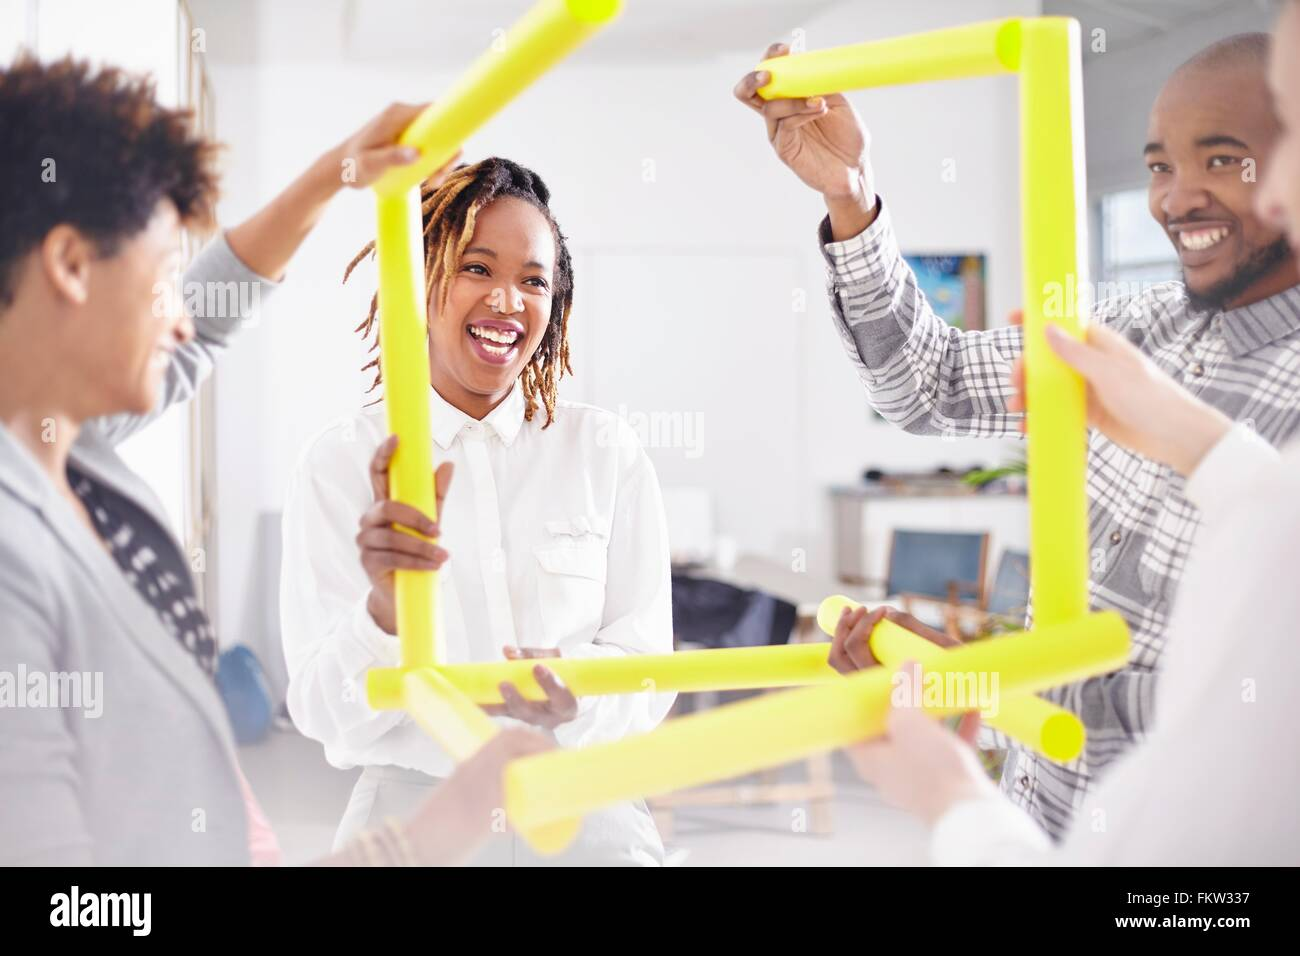 Collègues de travail team building holding yellow rubes smiling Photo Stock